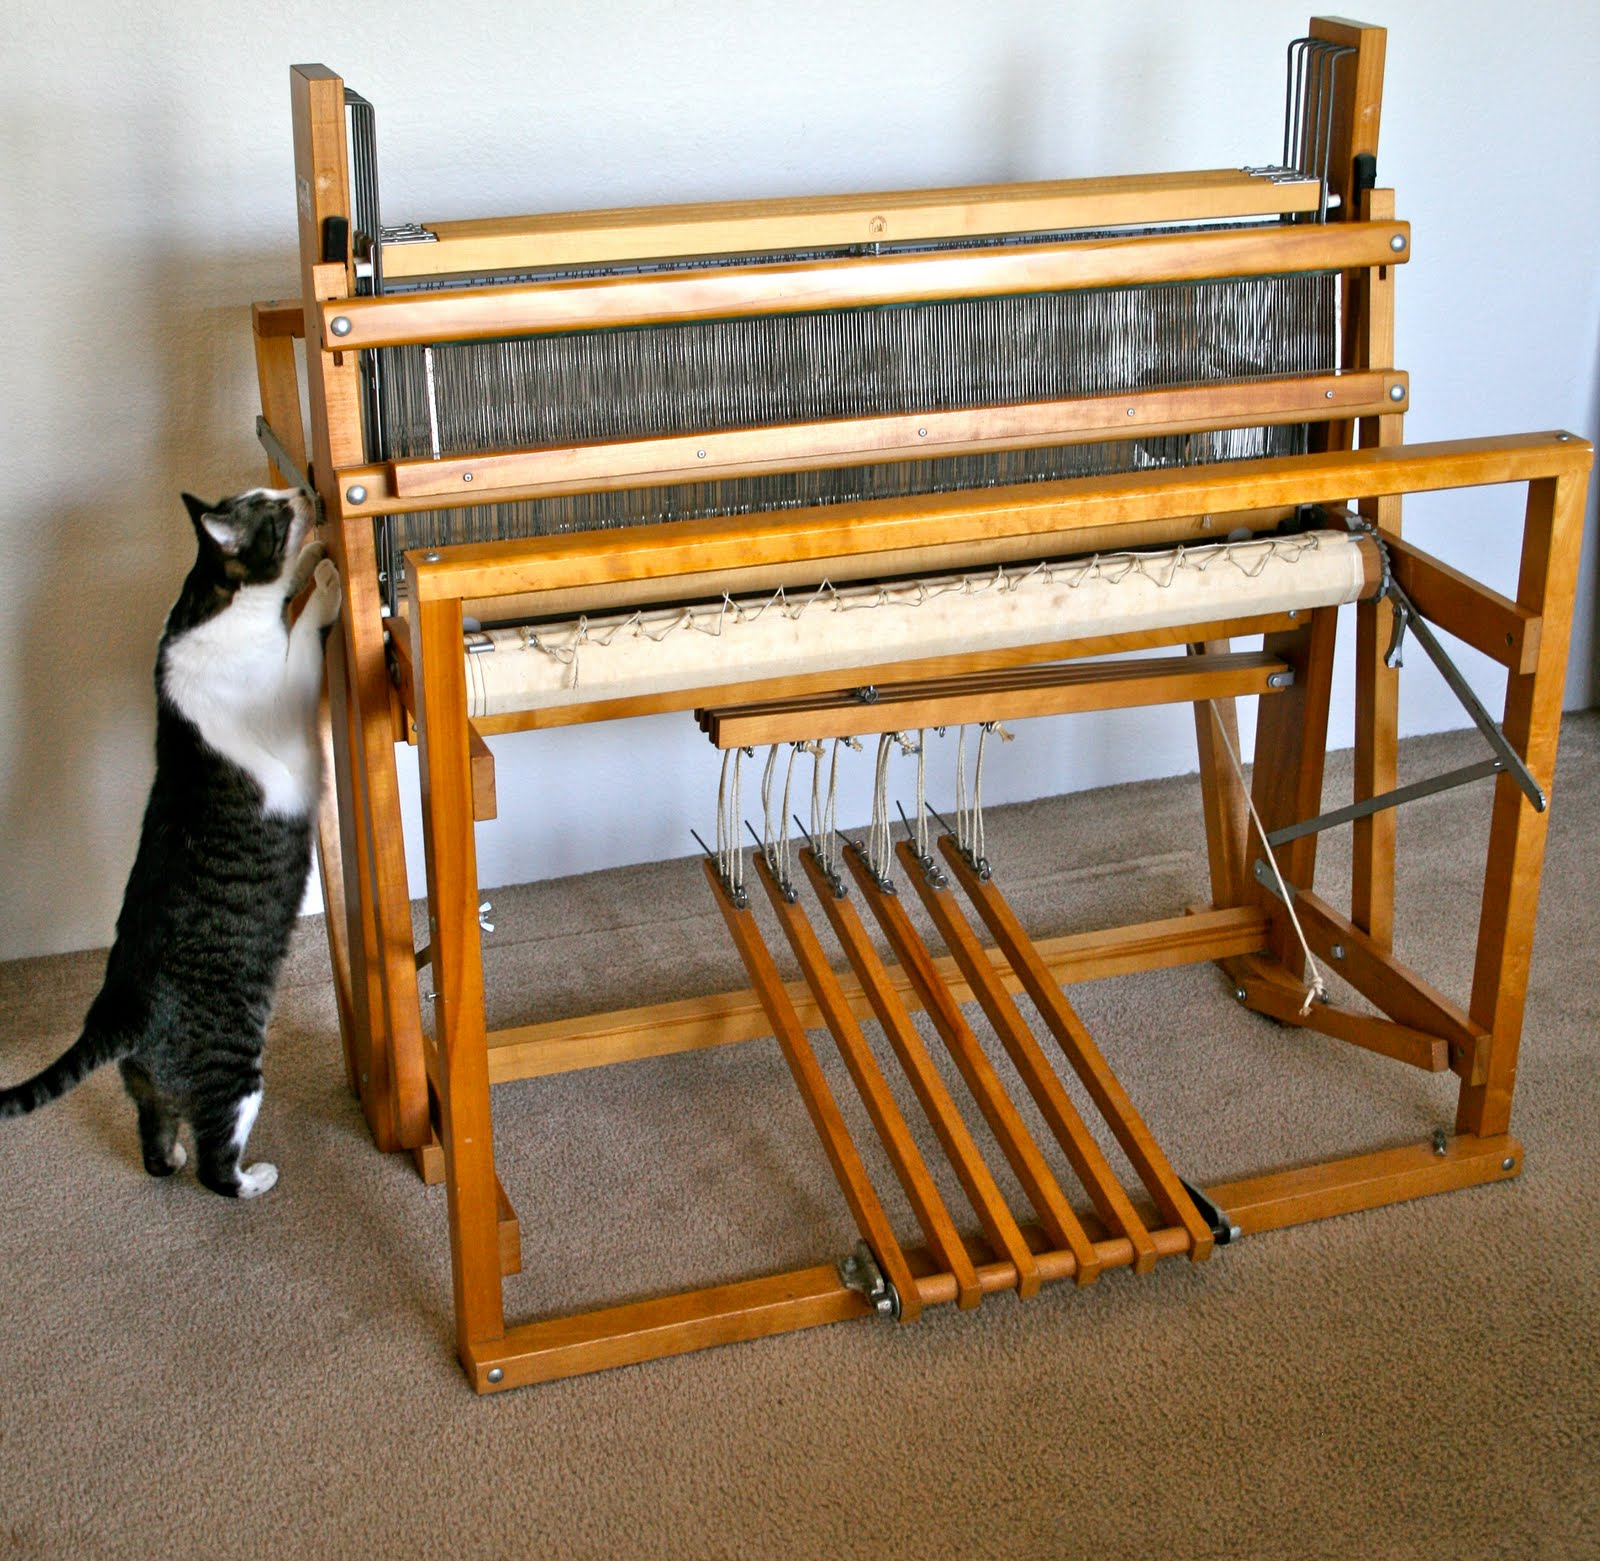 Aunt Nancys Handmade Soap Nilus Leclerc 36 4 Harness Floor Loom Homeade Tow For Sale